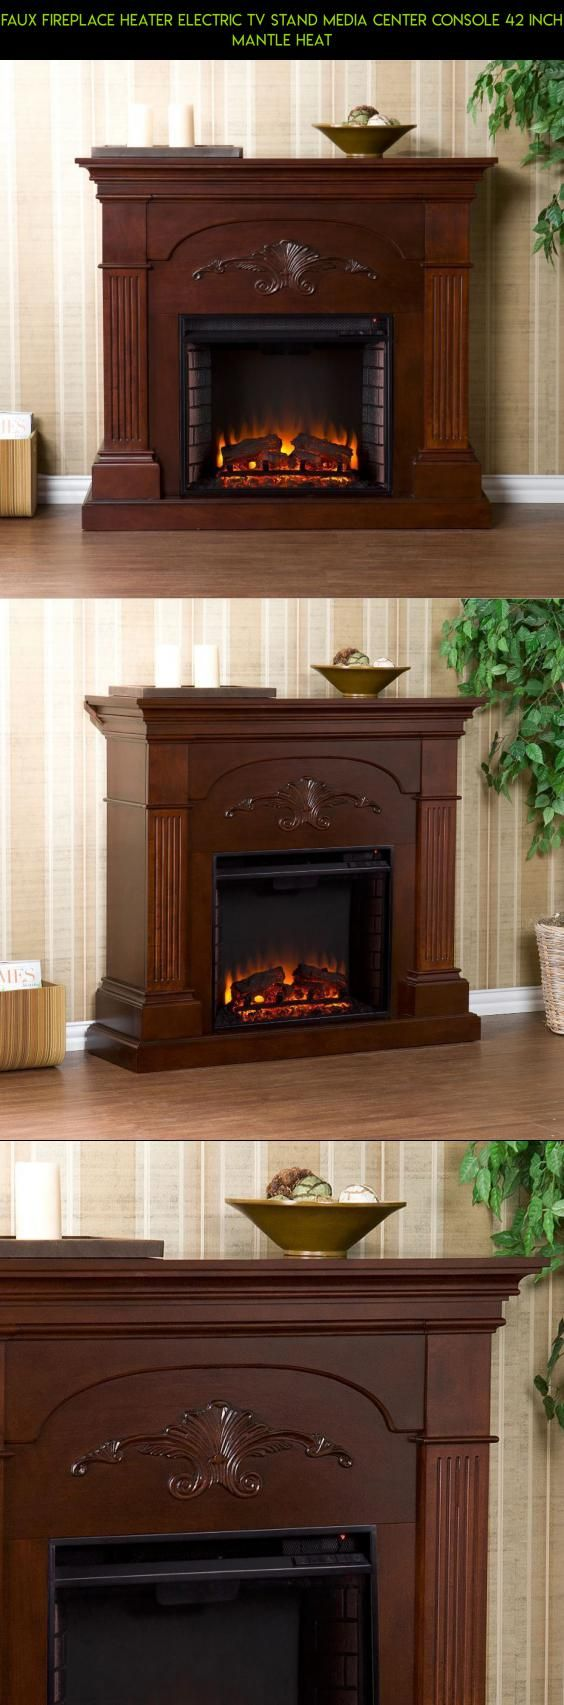 Cheap legends furniture cambridge fireplace media center in cherry - Faux Fireplace Heater Electric Tv Stand Media Center Console 42 Inch Mantle Heat Parts